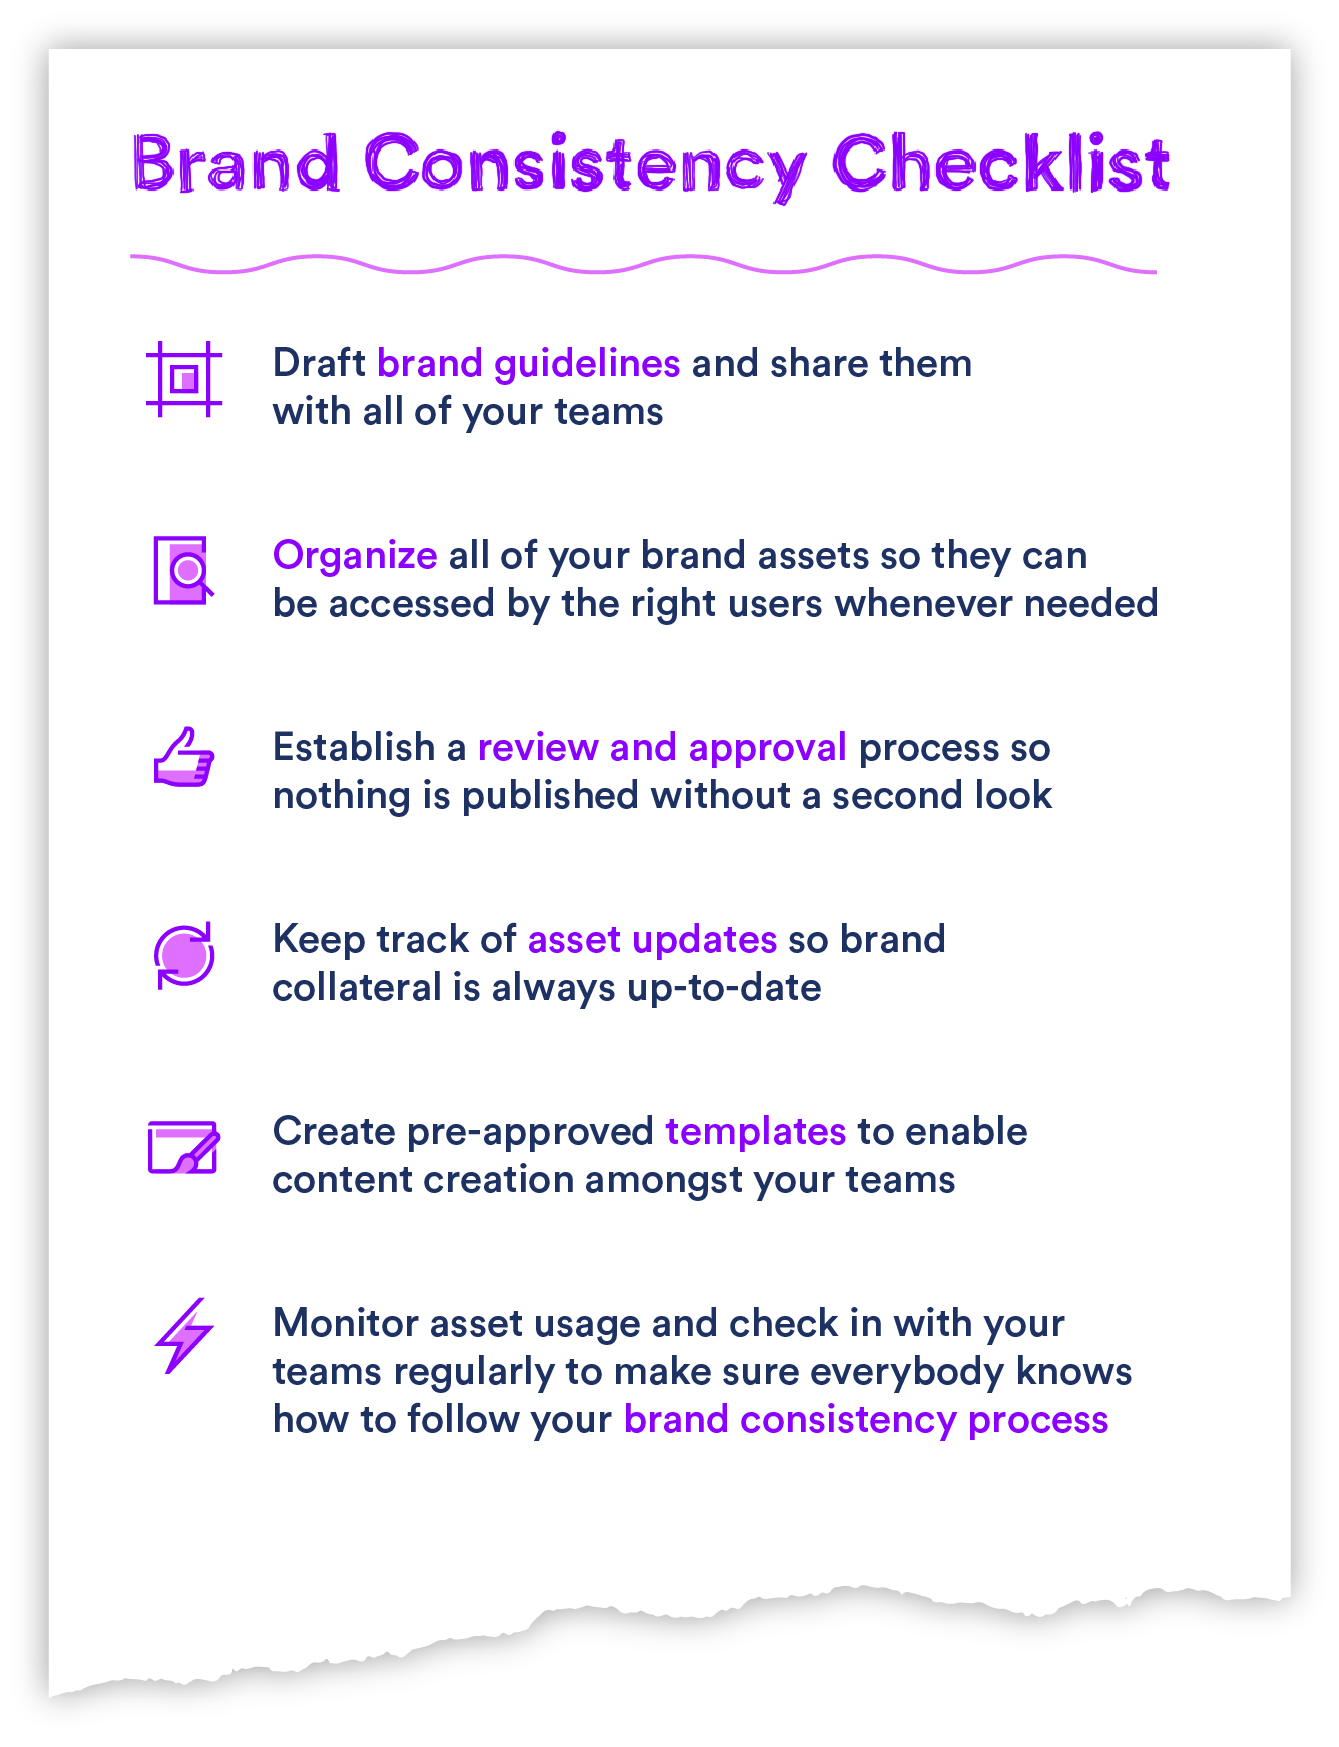 Graphic of the brand consistency checklist